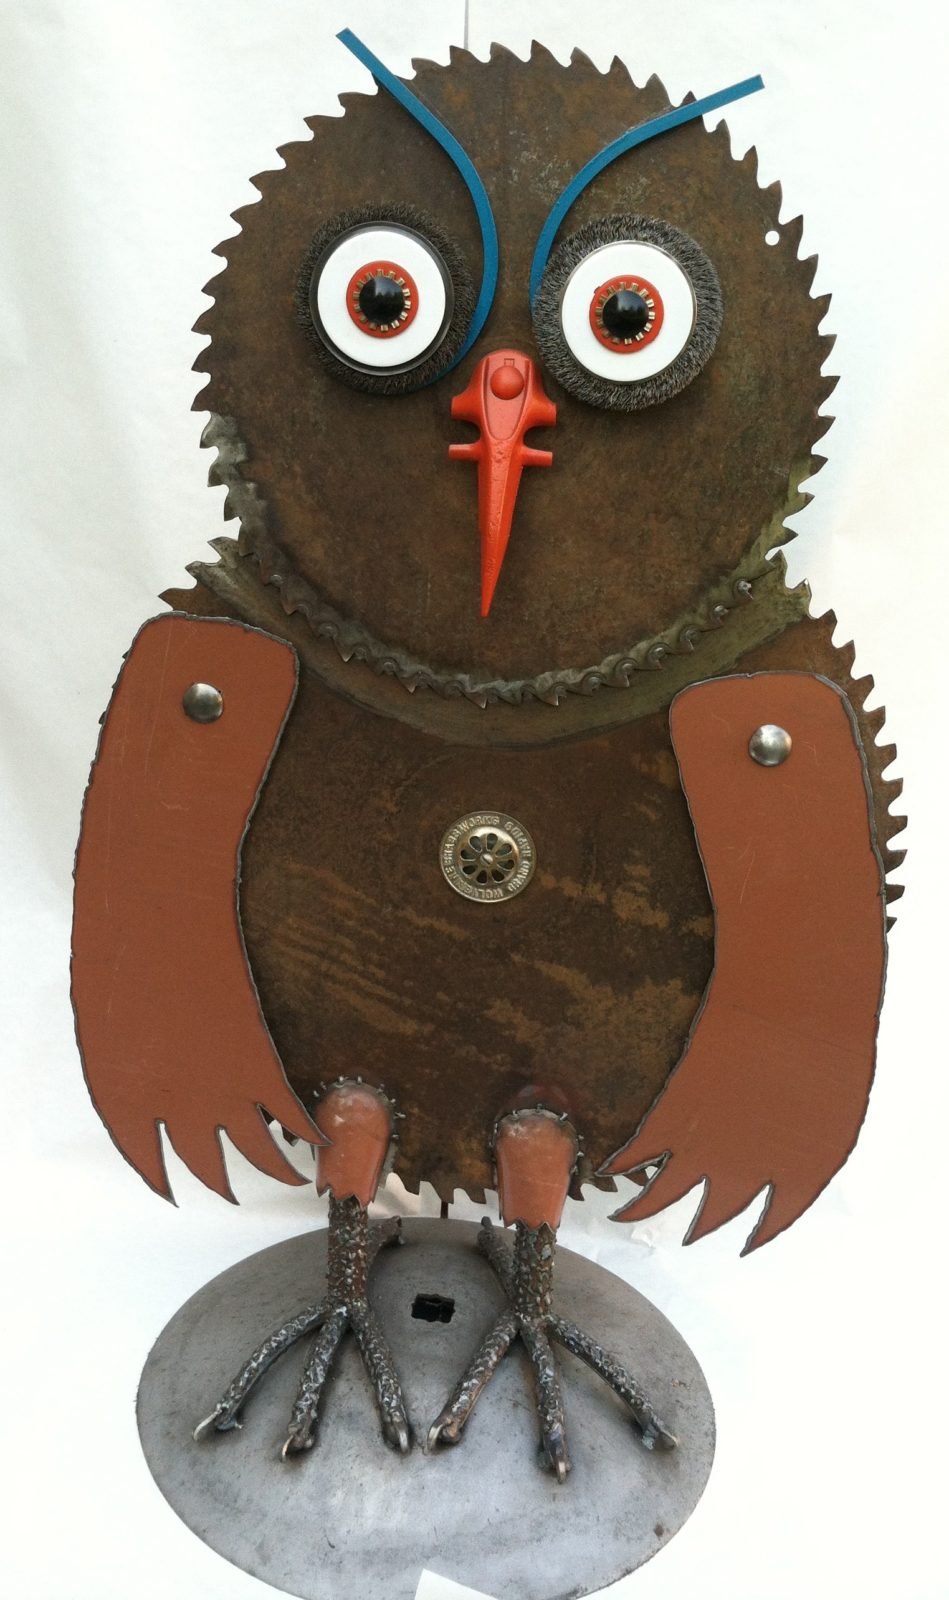 Big Sawblade Owl Sculpture